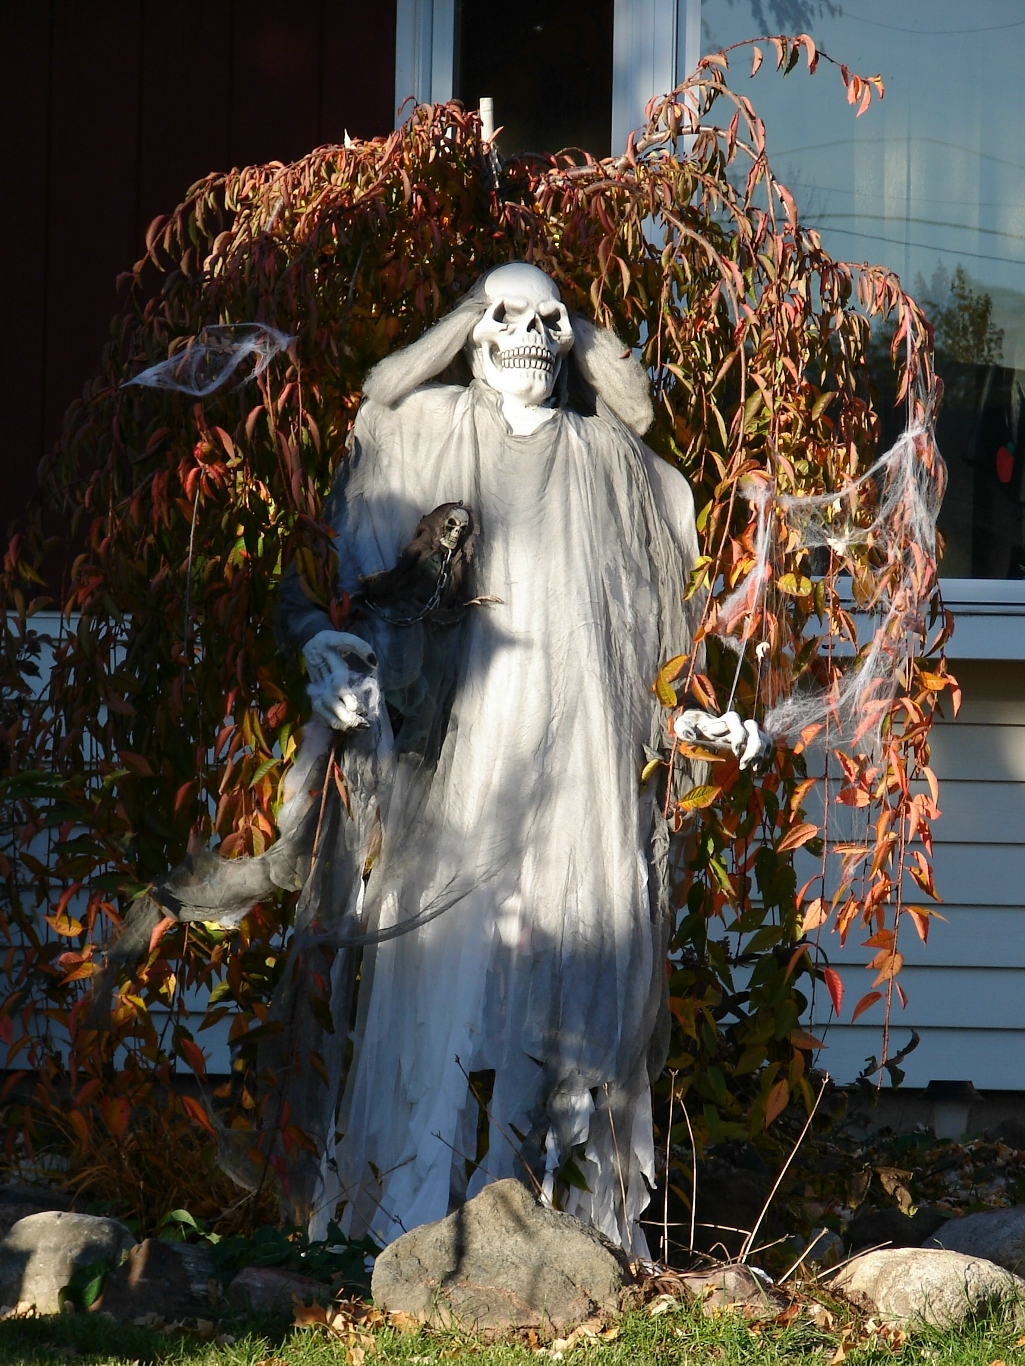 Scary halloween decorations ideas - Outdoor Halloween Yard Decorations